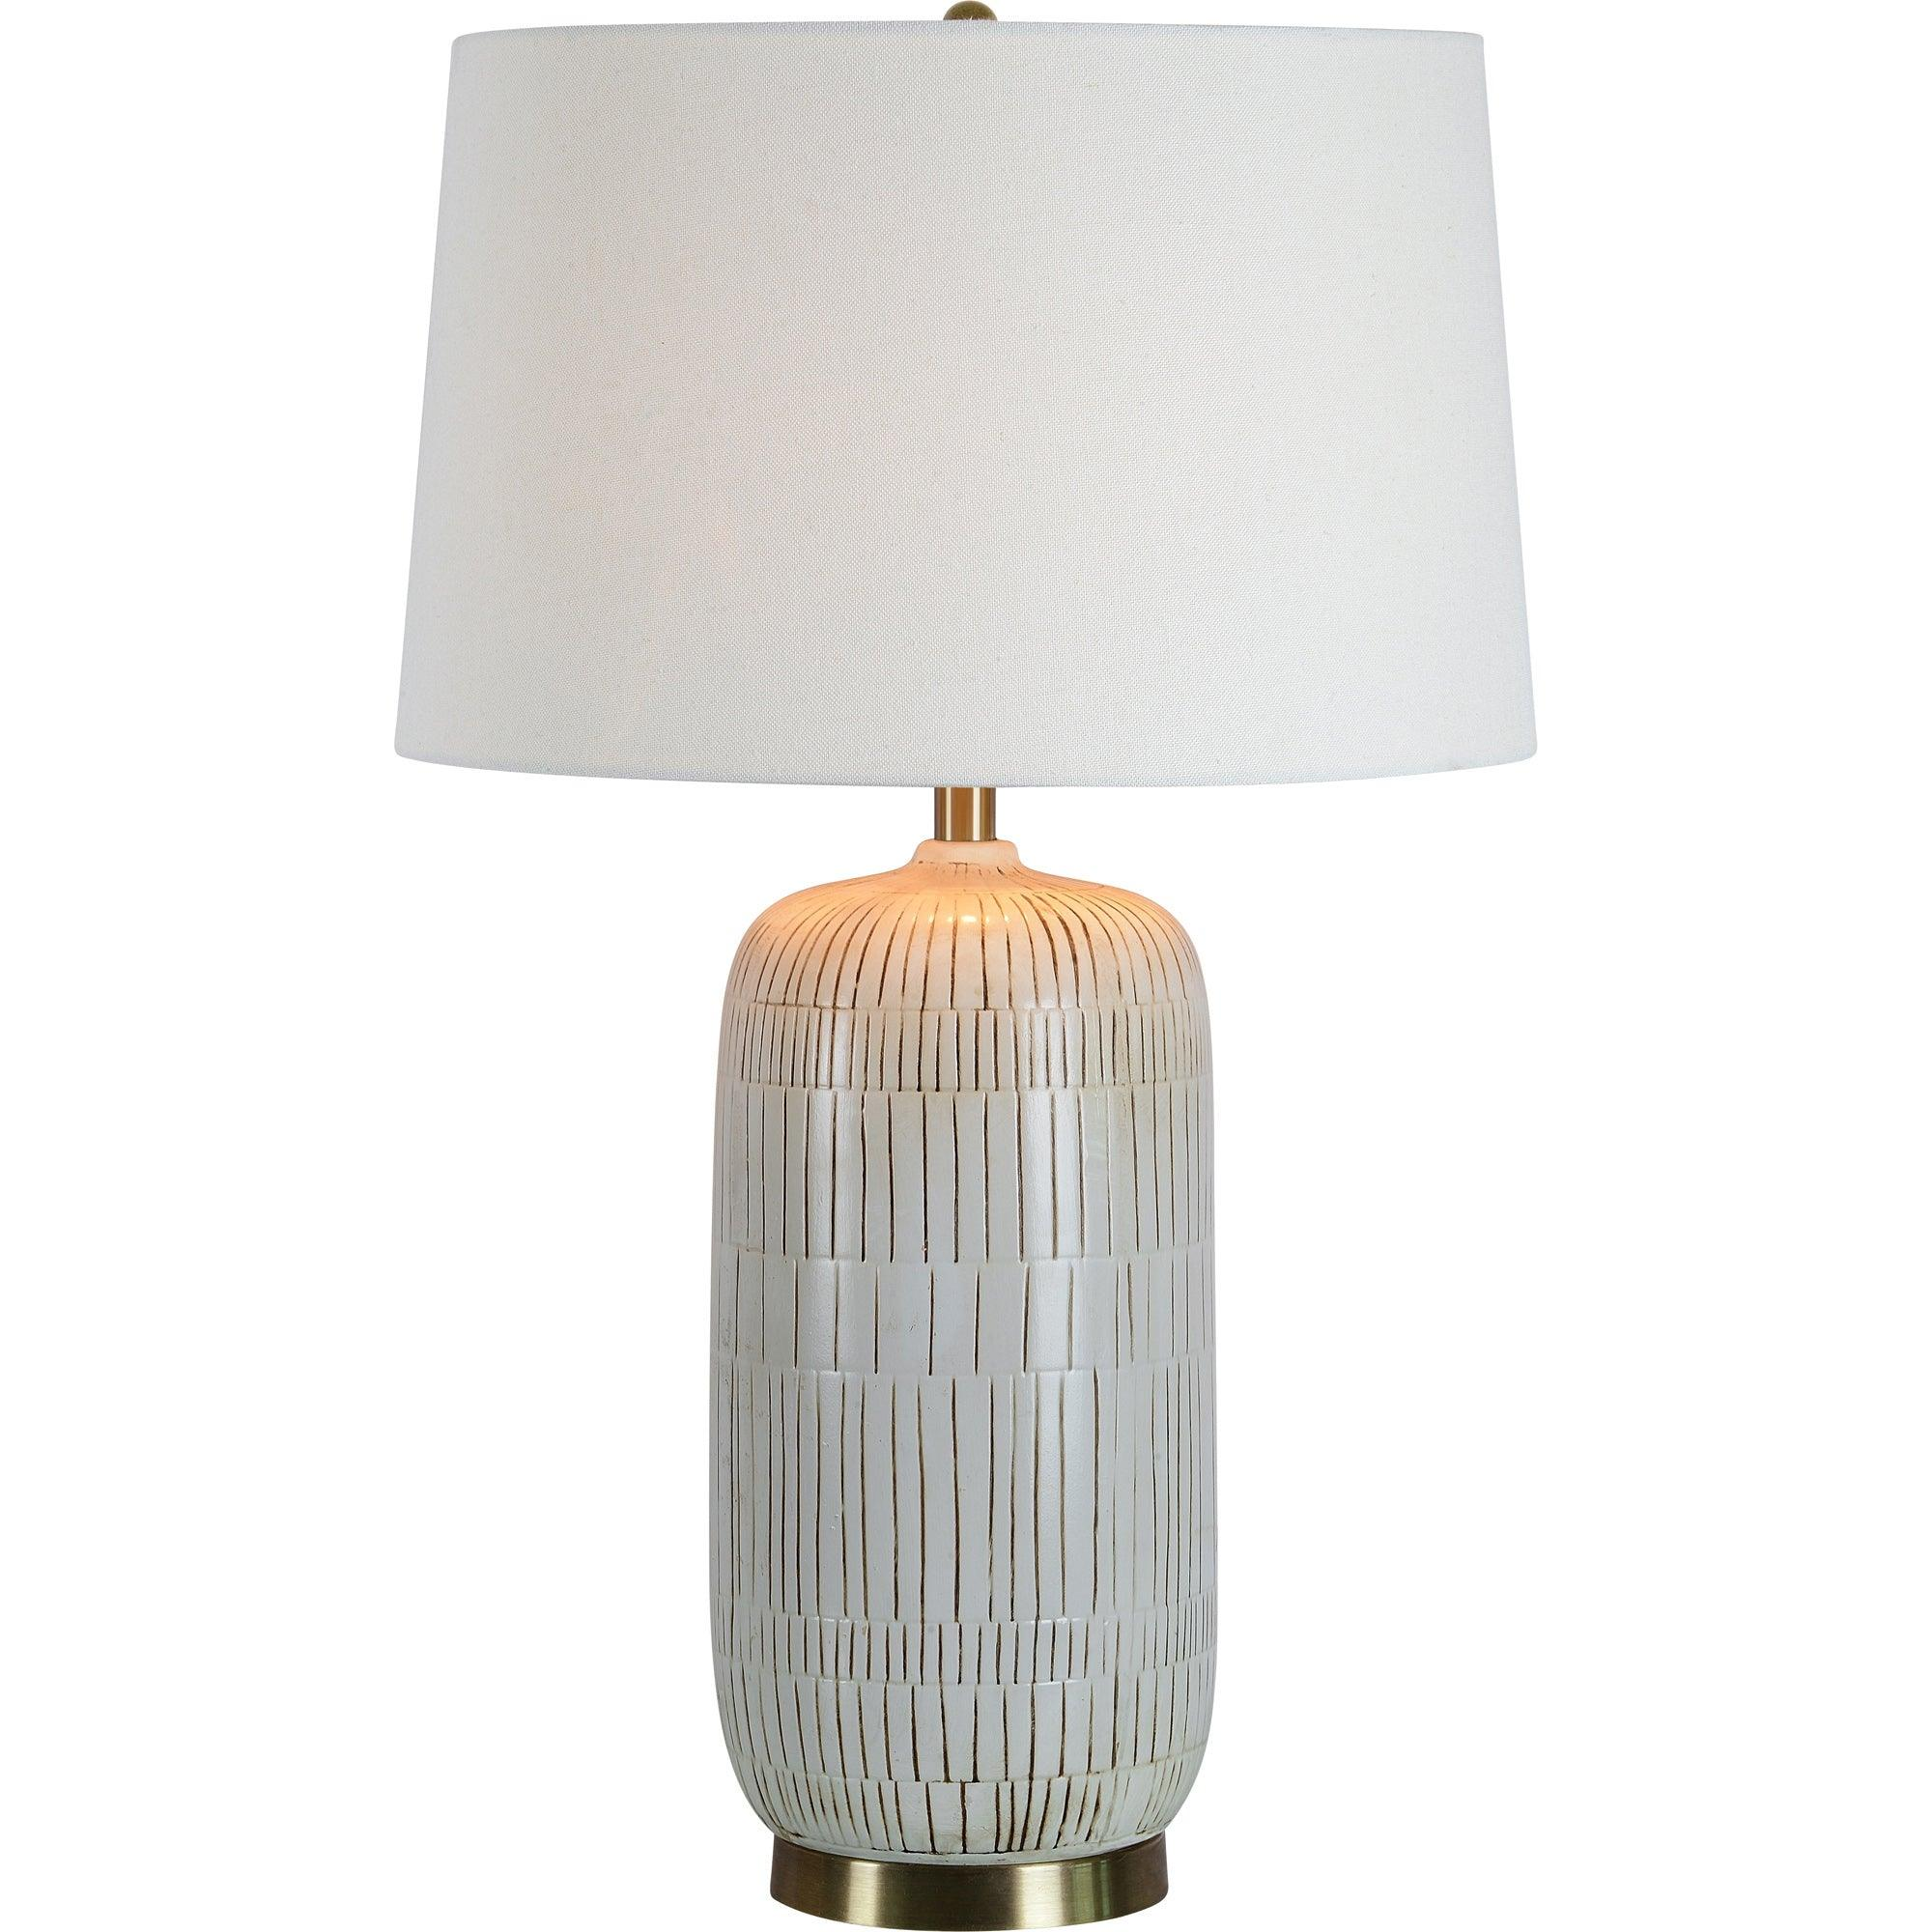 Pierce Table Lamp